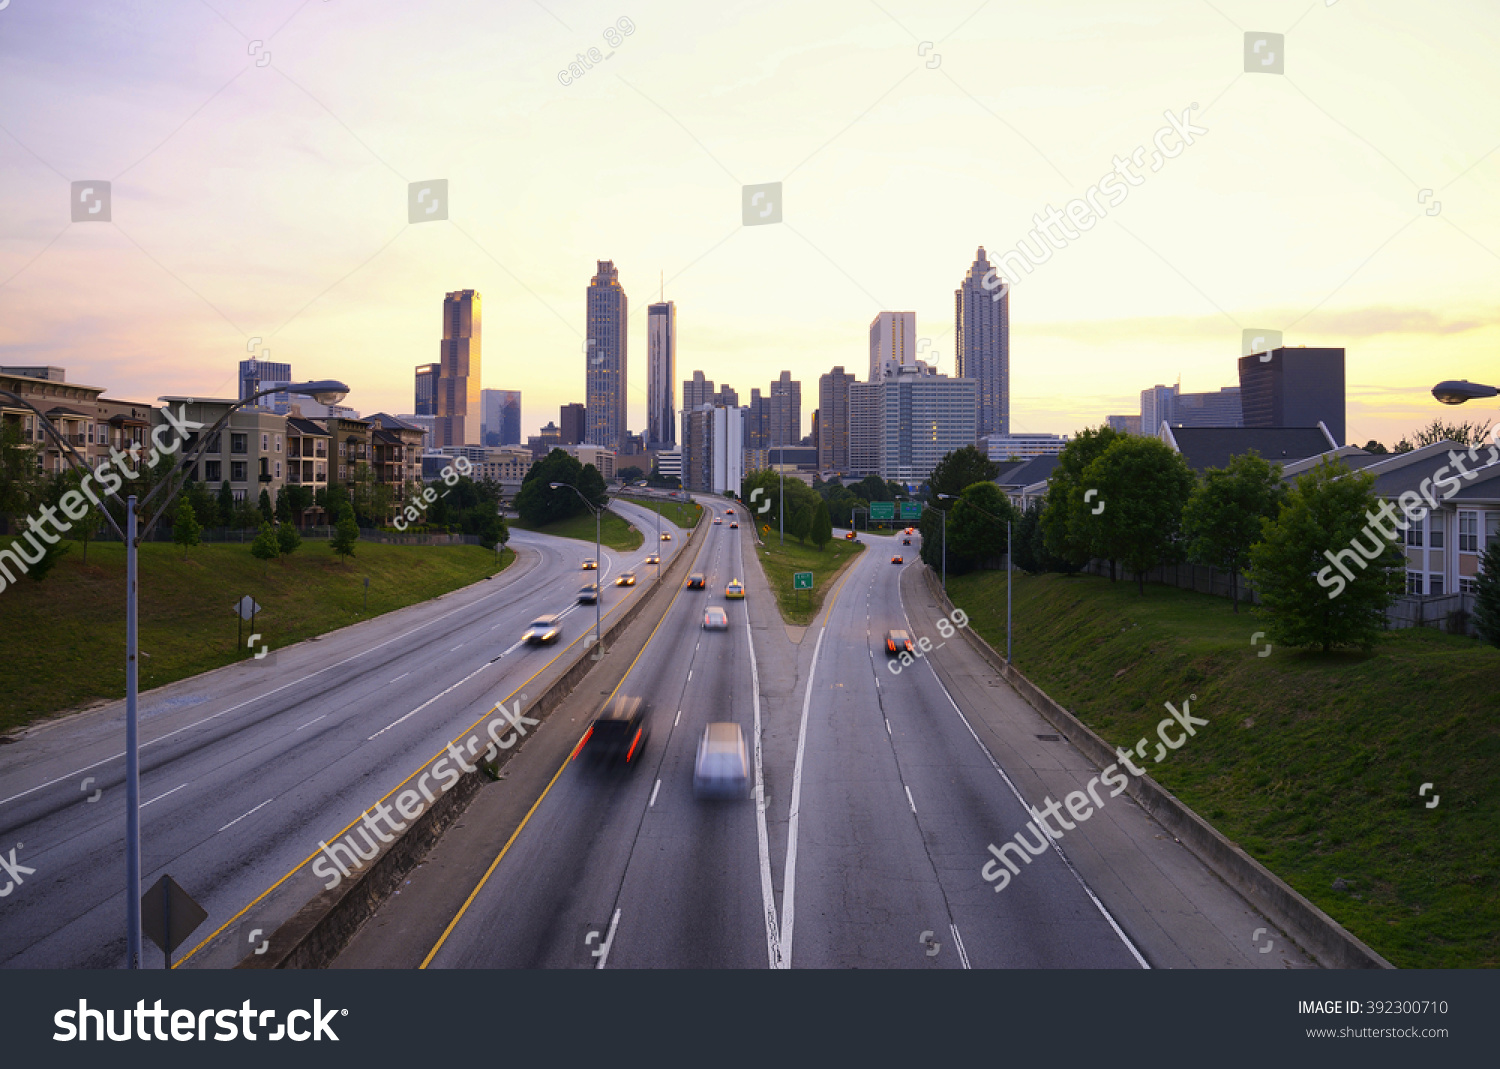 atlanta skyline georgia usa stock photo 392300710 shutterstock. Black Bedroom Furniture Sets. Home Design Ideas